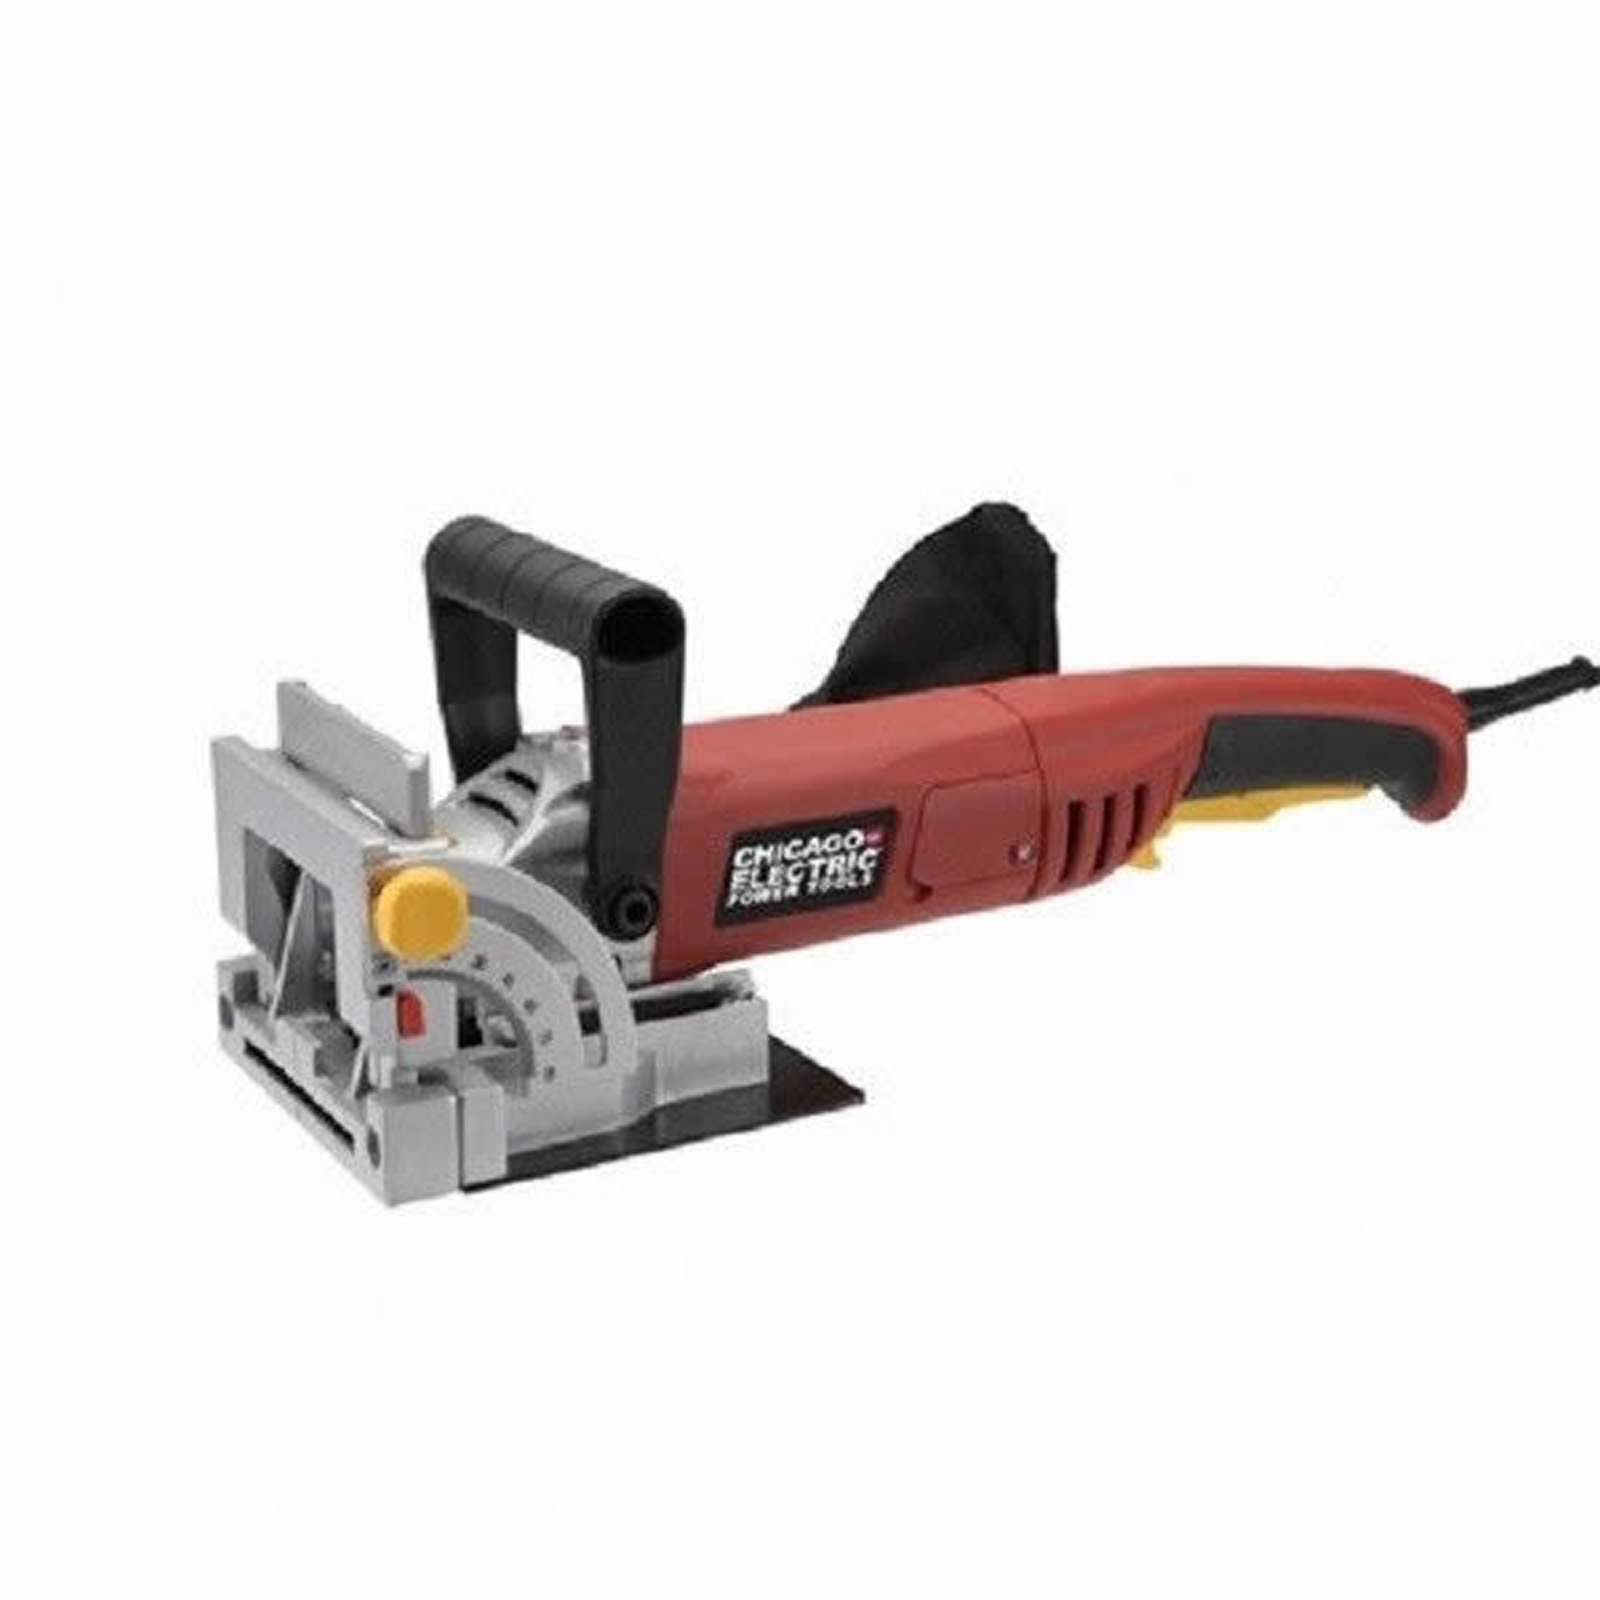 Heavy Duty Wood Bisquit Plate Jointer Power Tool Joiner Biscuit Kit